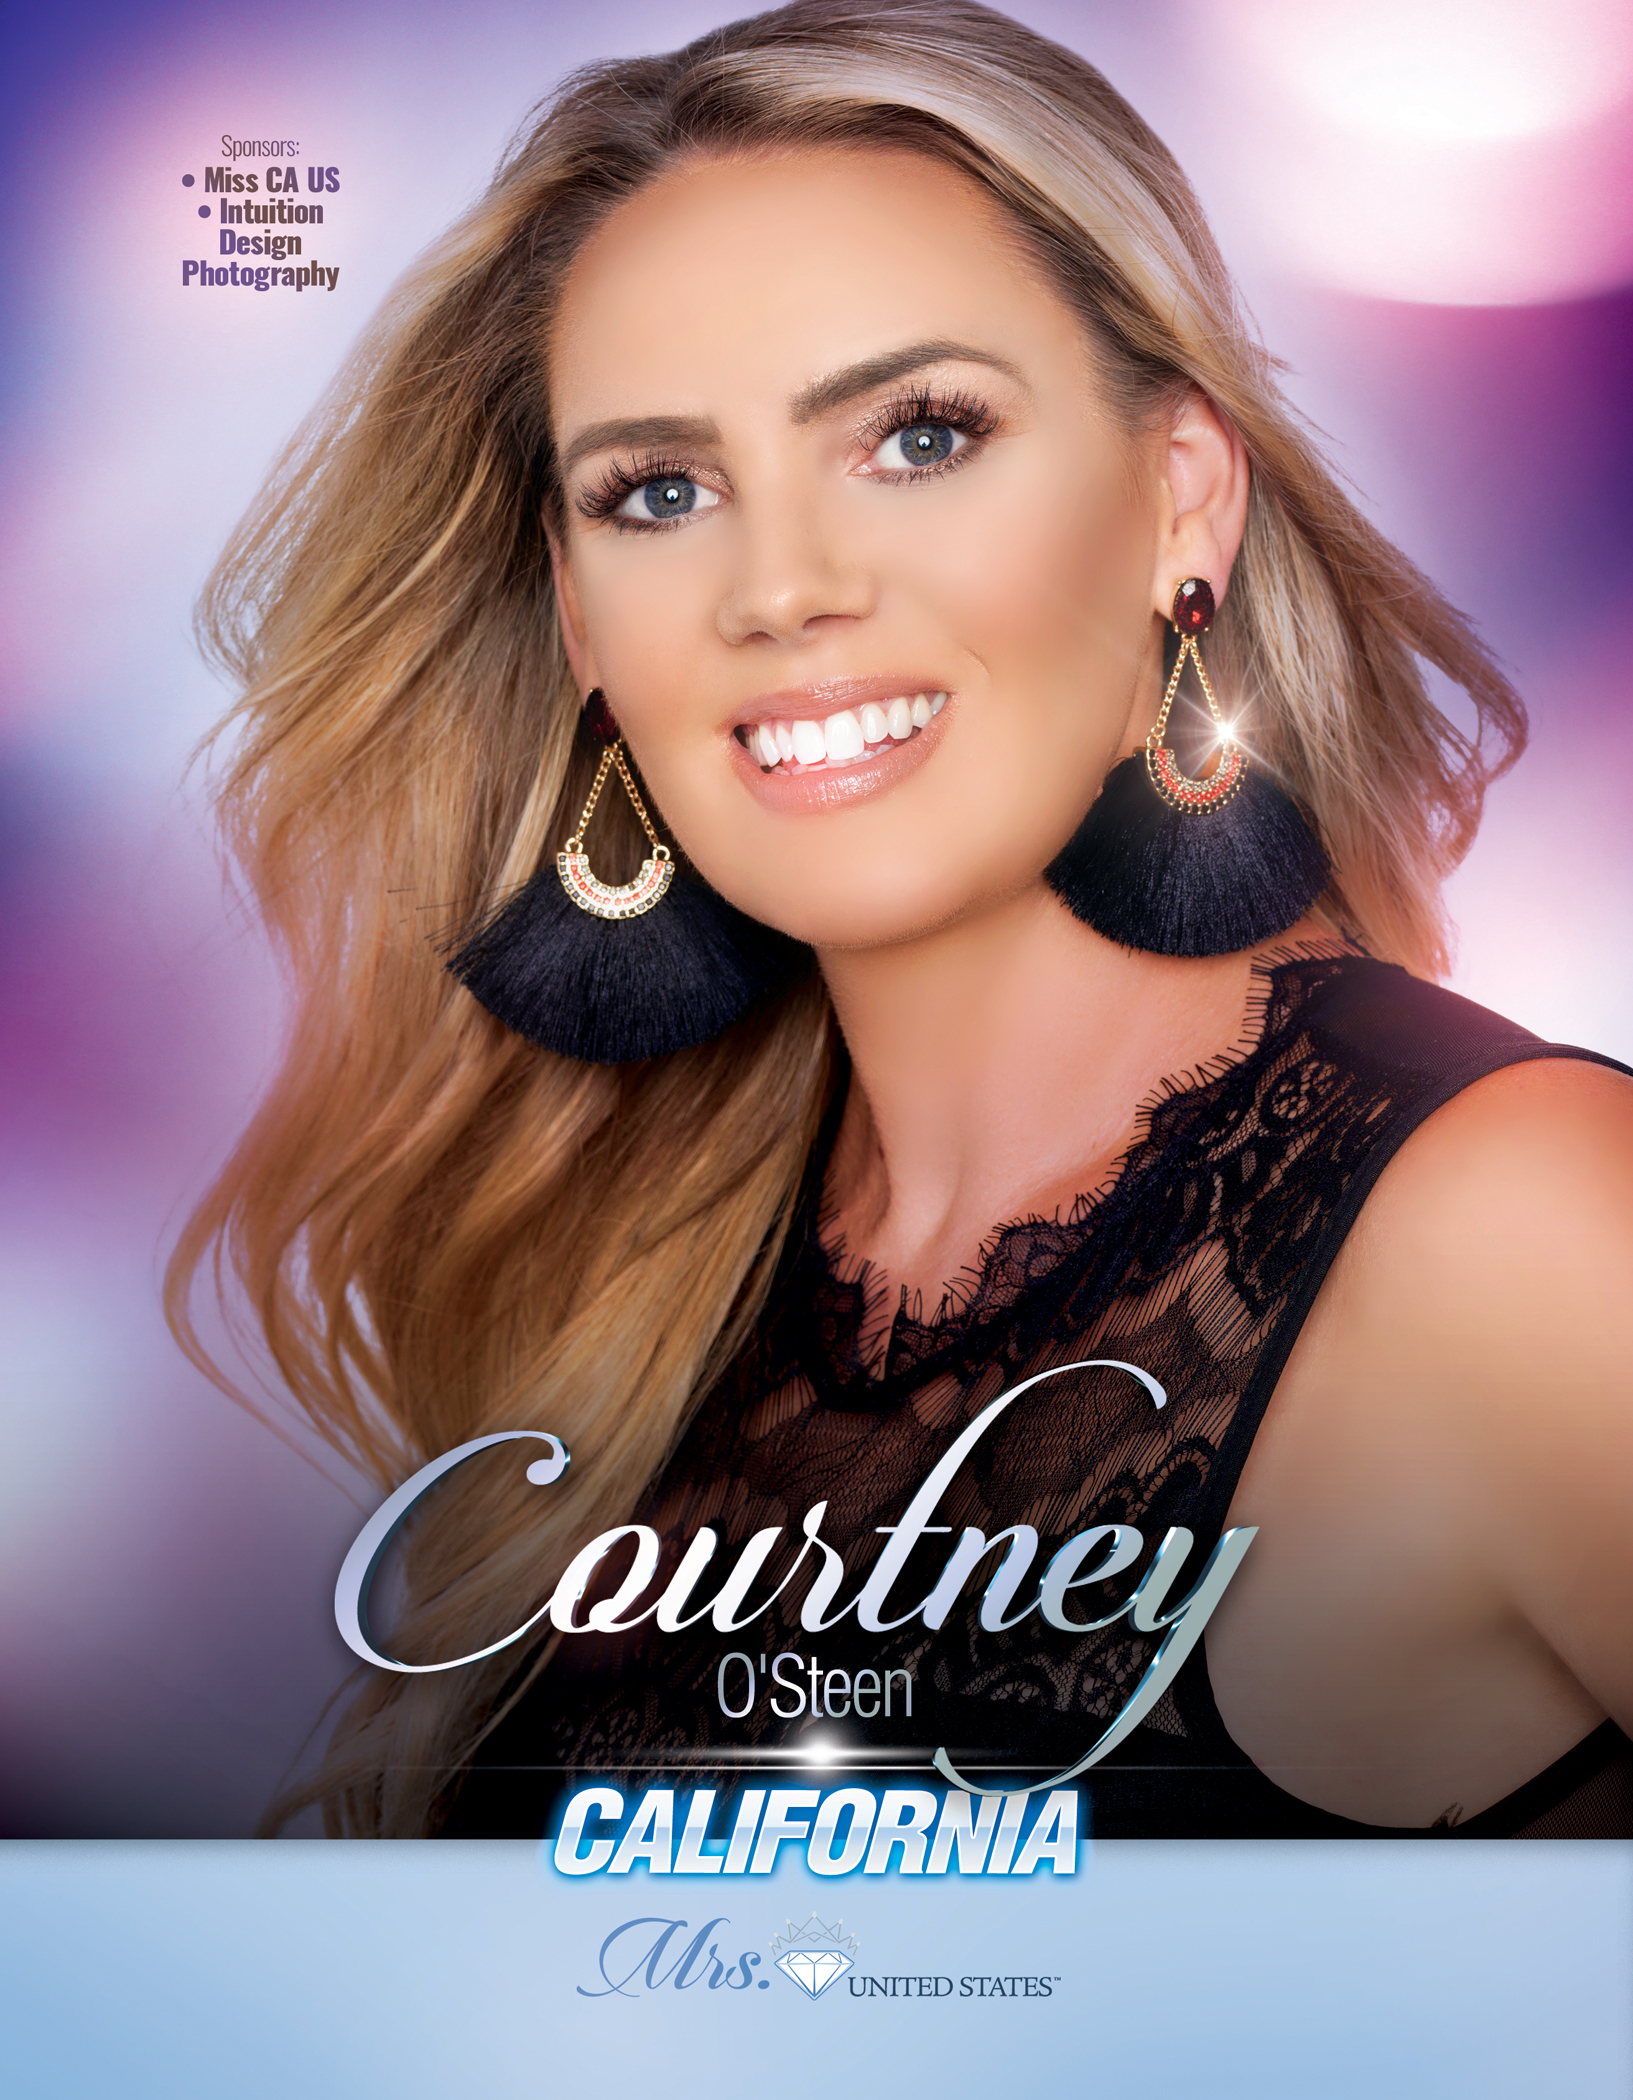 Courtney O'Steen Mrs. California United States - 2019